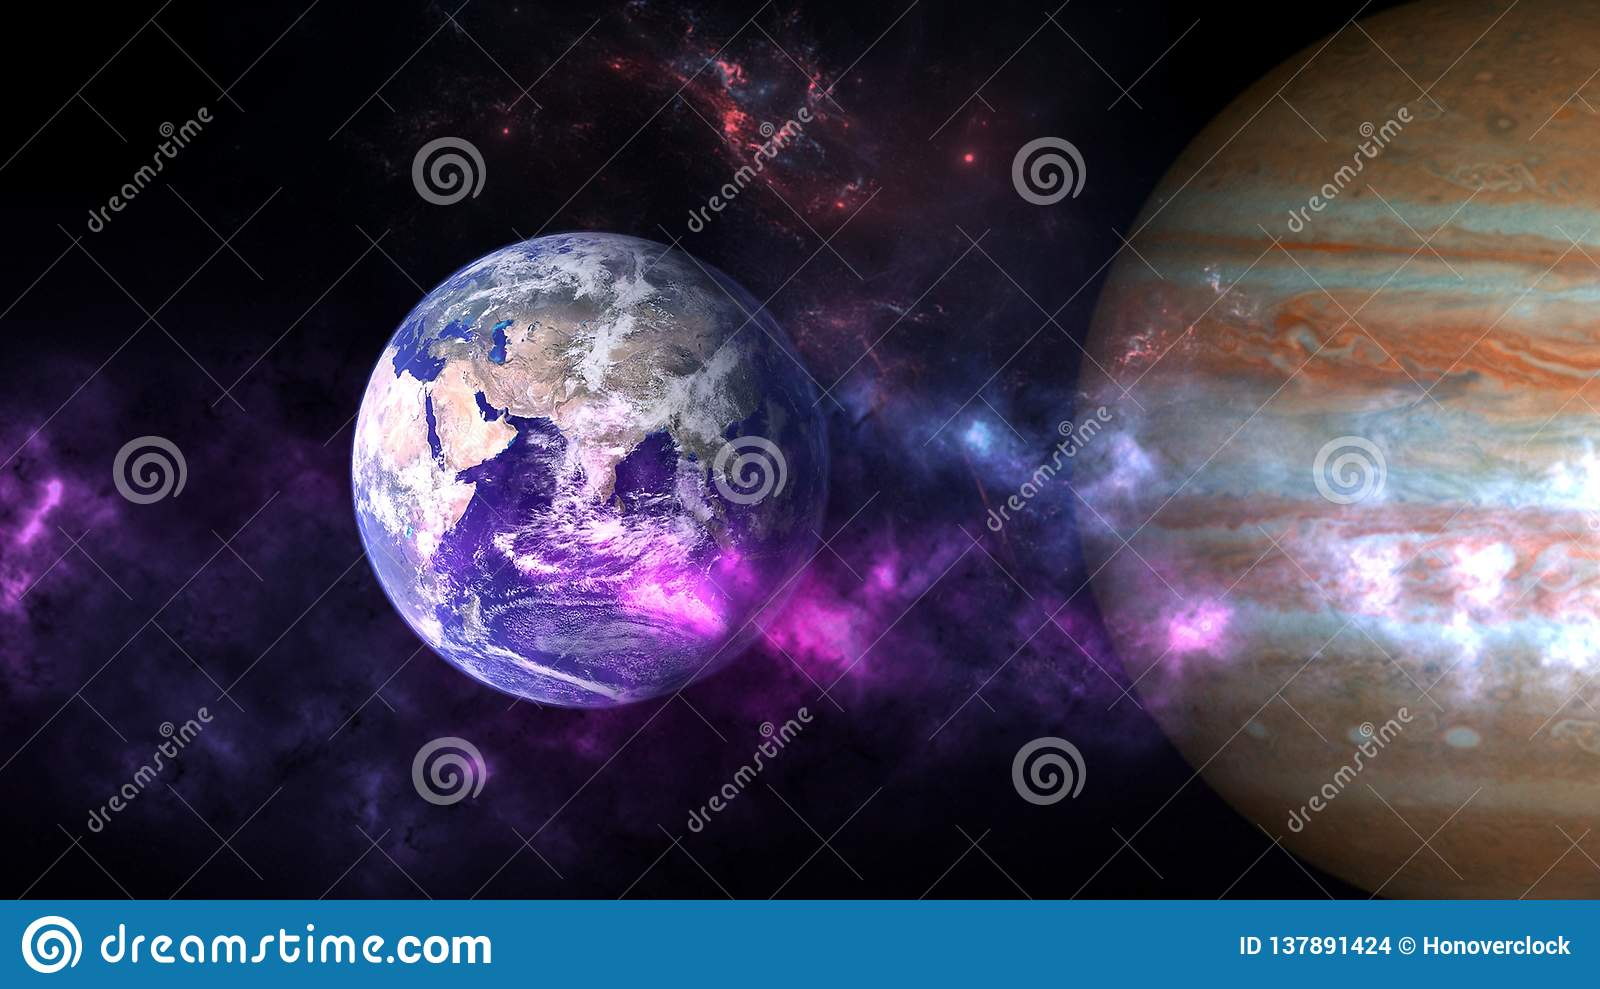 Planets and galaxy, cosmos, physical cosmology